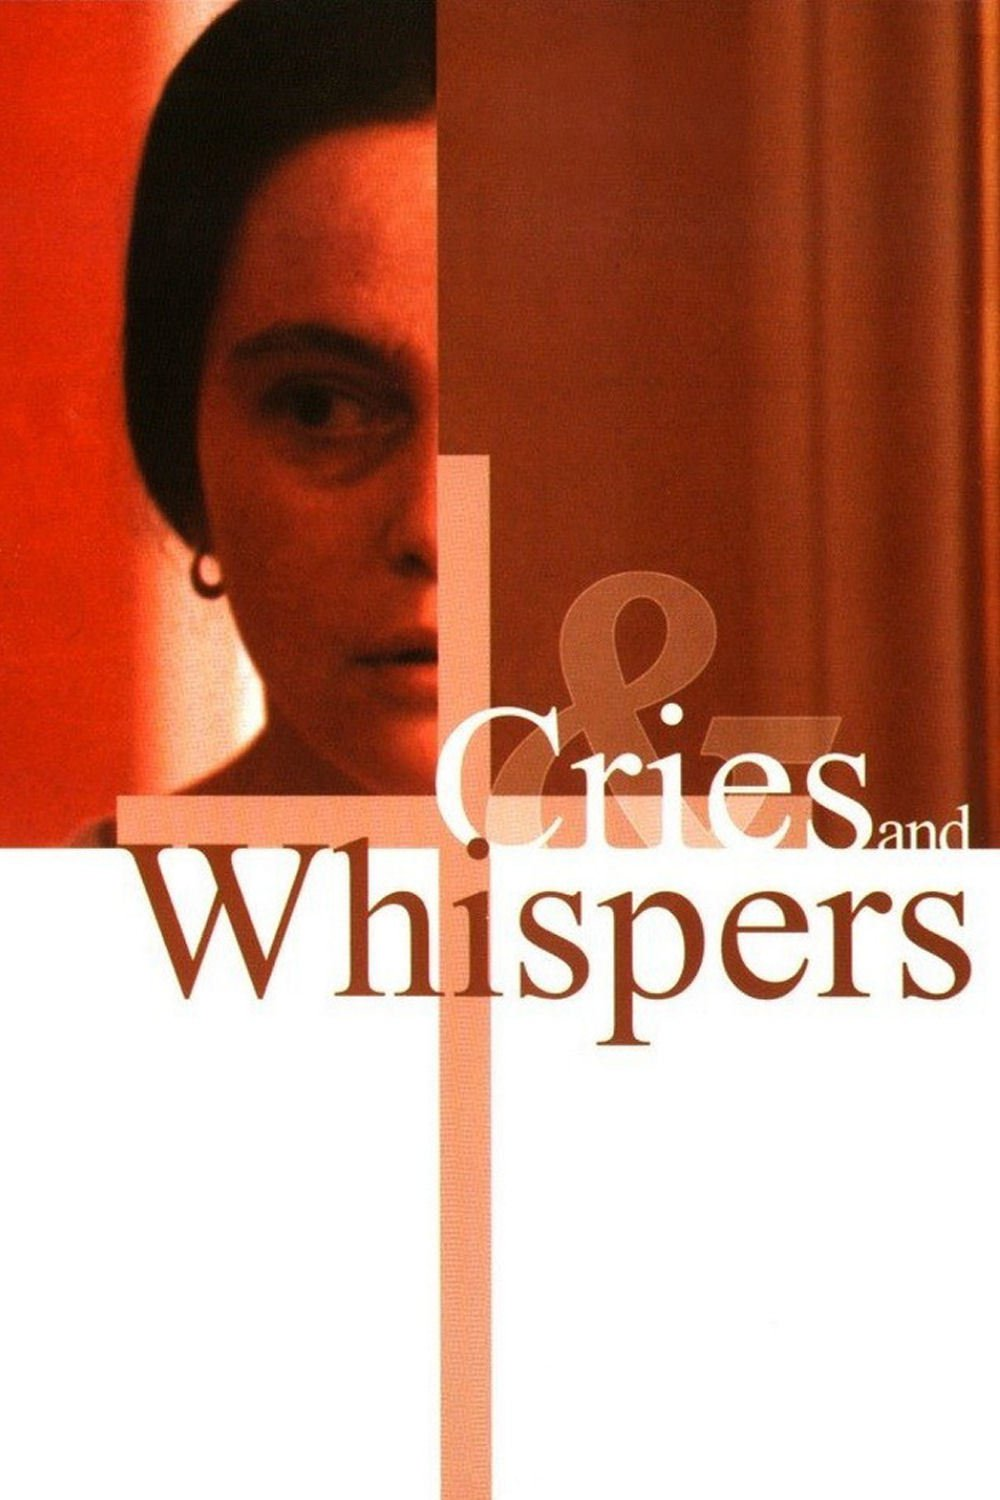 Cries and Whispers - Ingmar Bergman's 1972 movie is no less than a masterpiece and its description of the woman condition is brutaly contemporary.